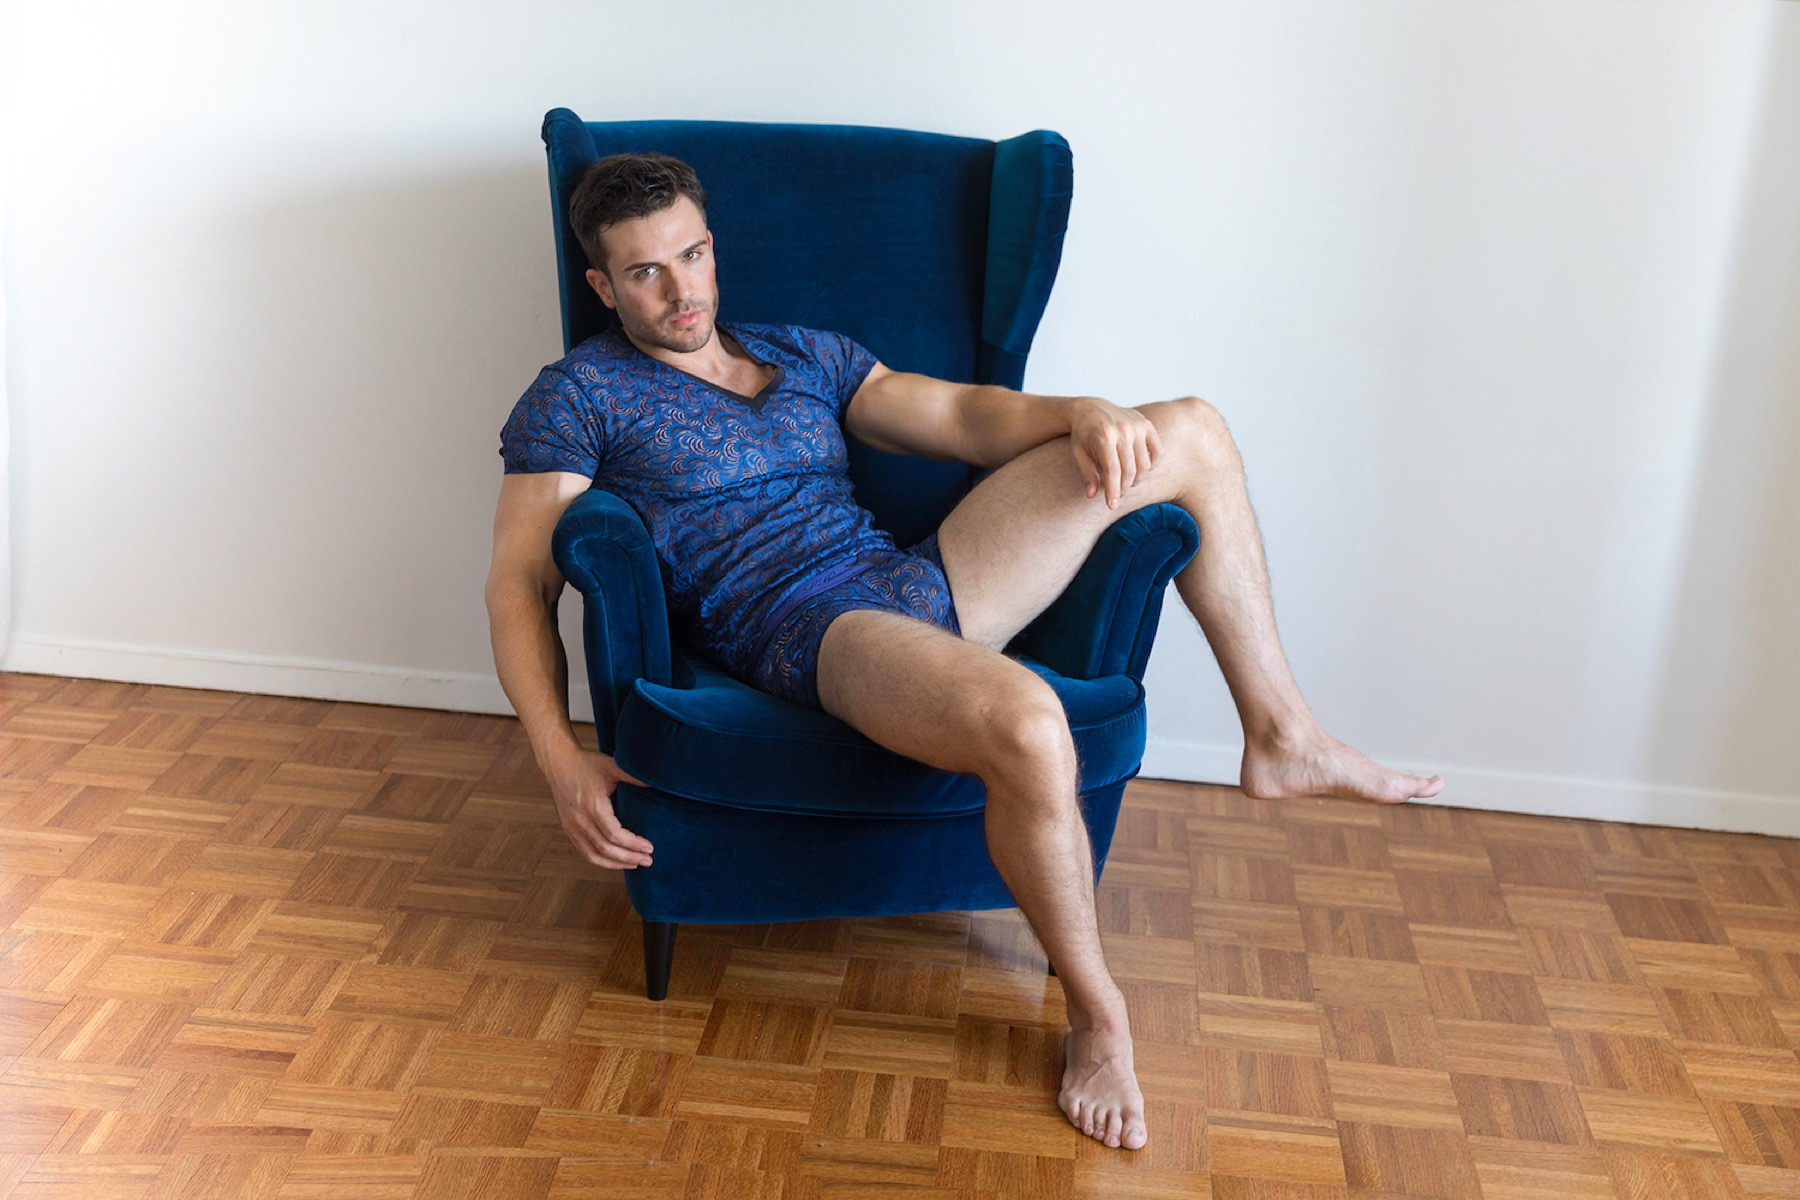 Brief Distraction featuring L'Homme Invisible